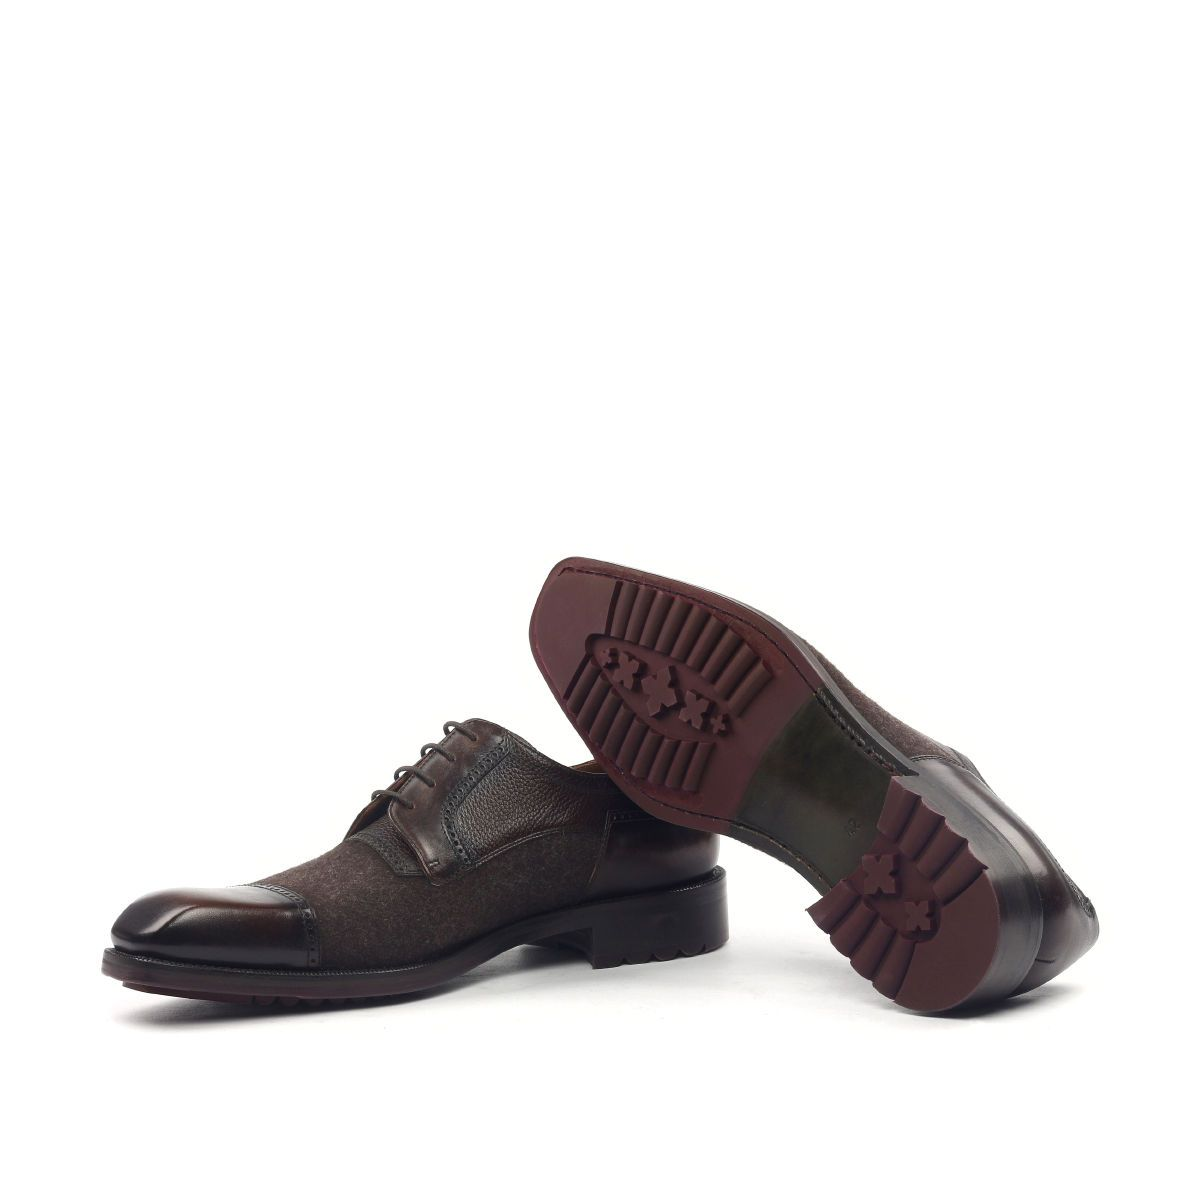 Omine Perforated Details Cap Toe Derby